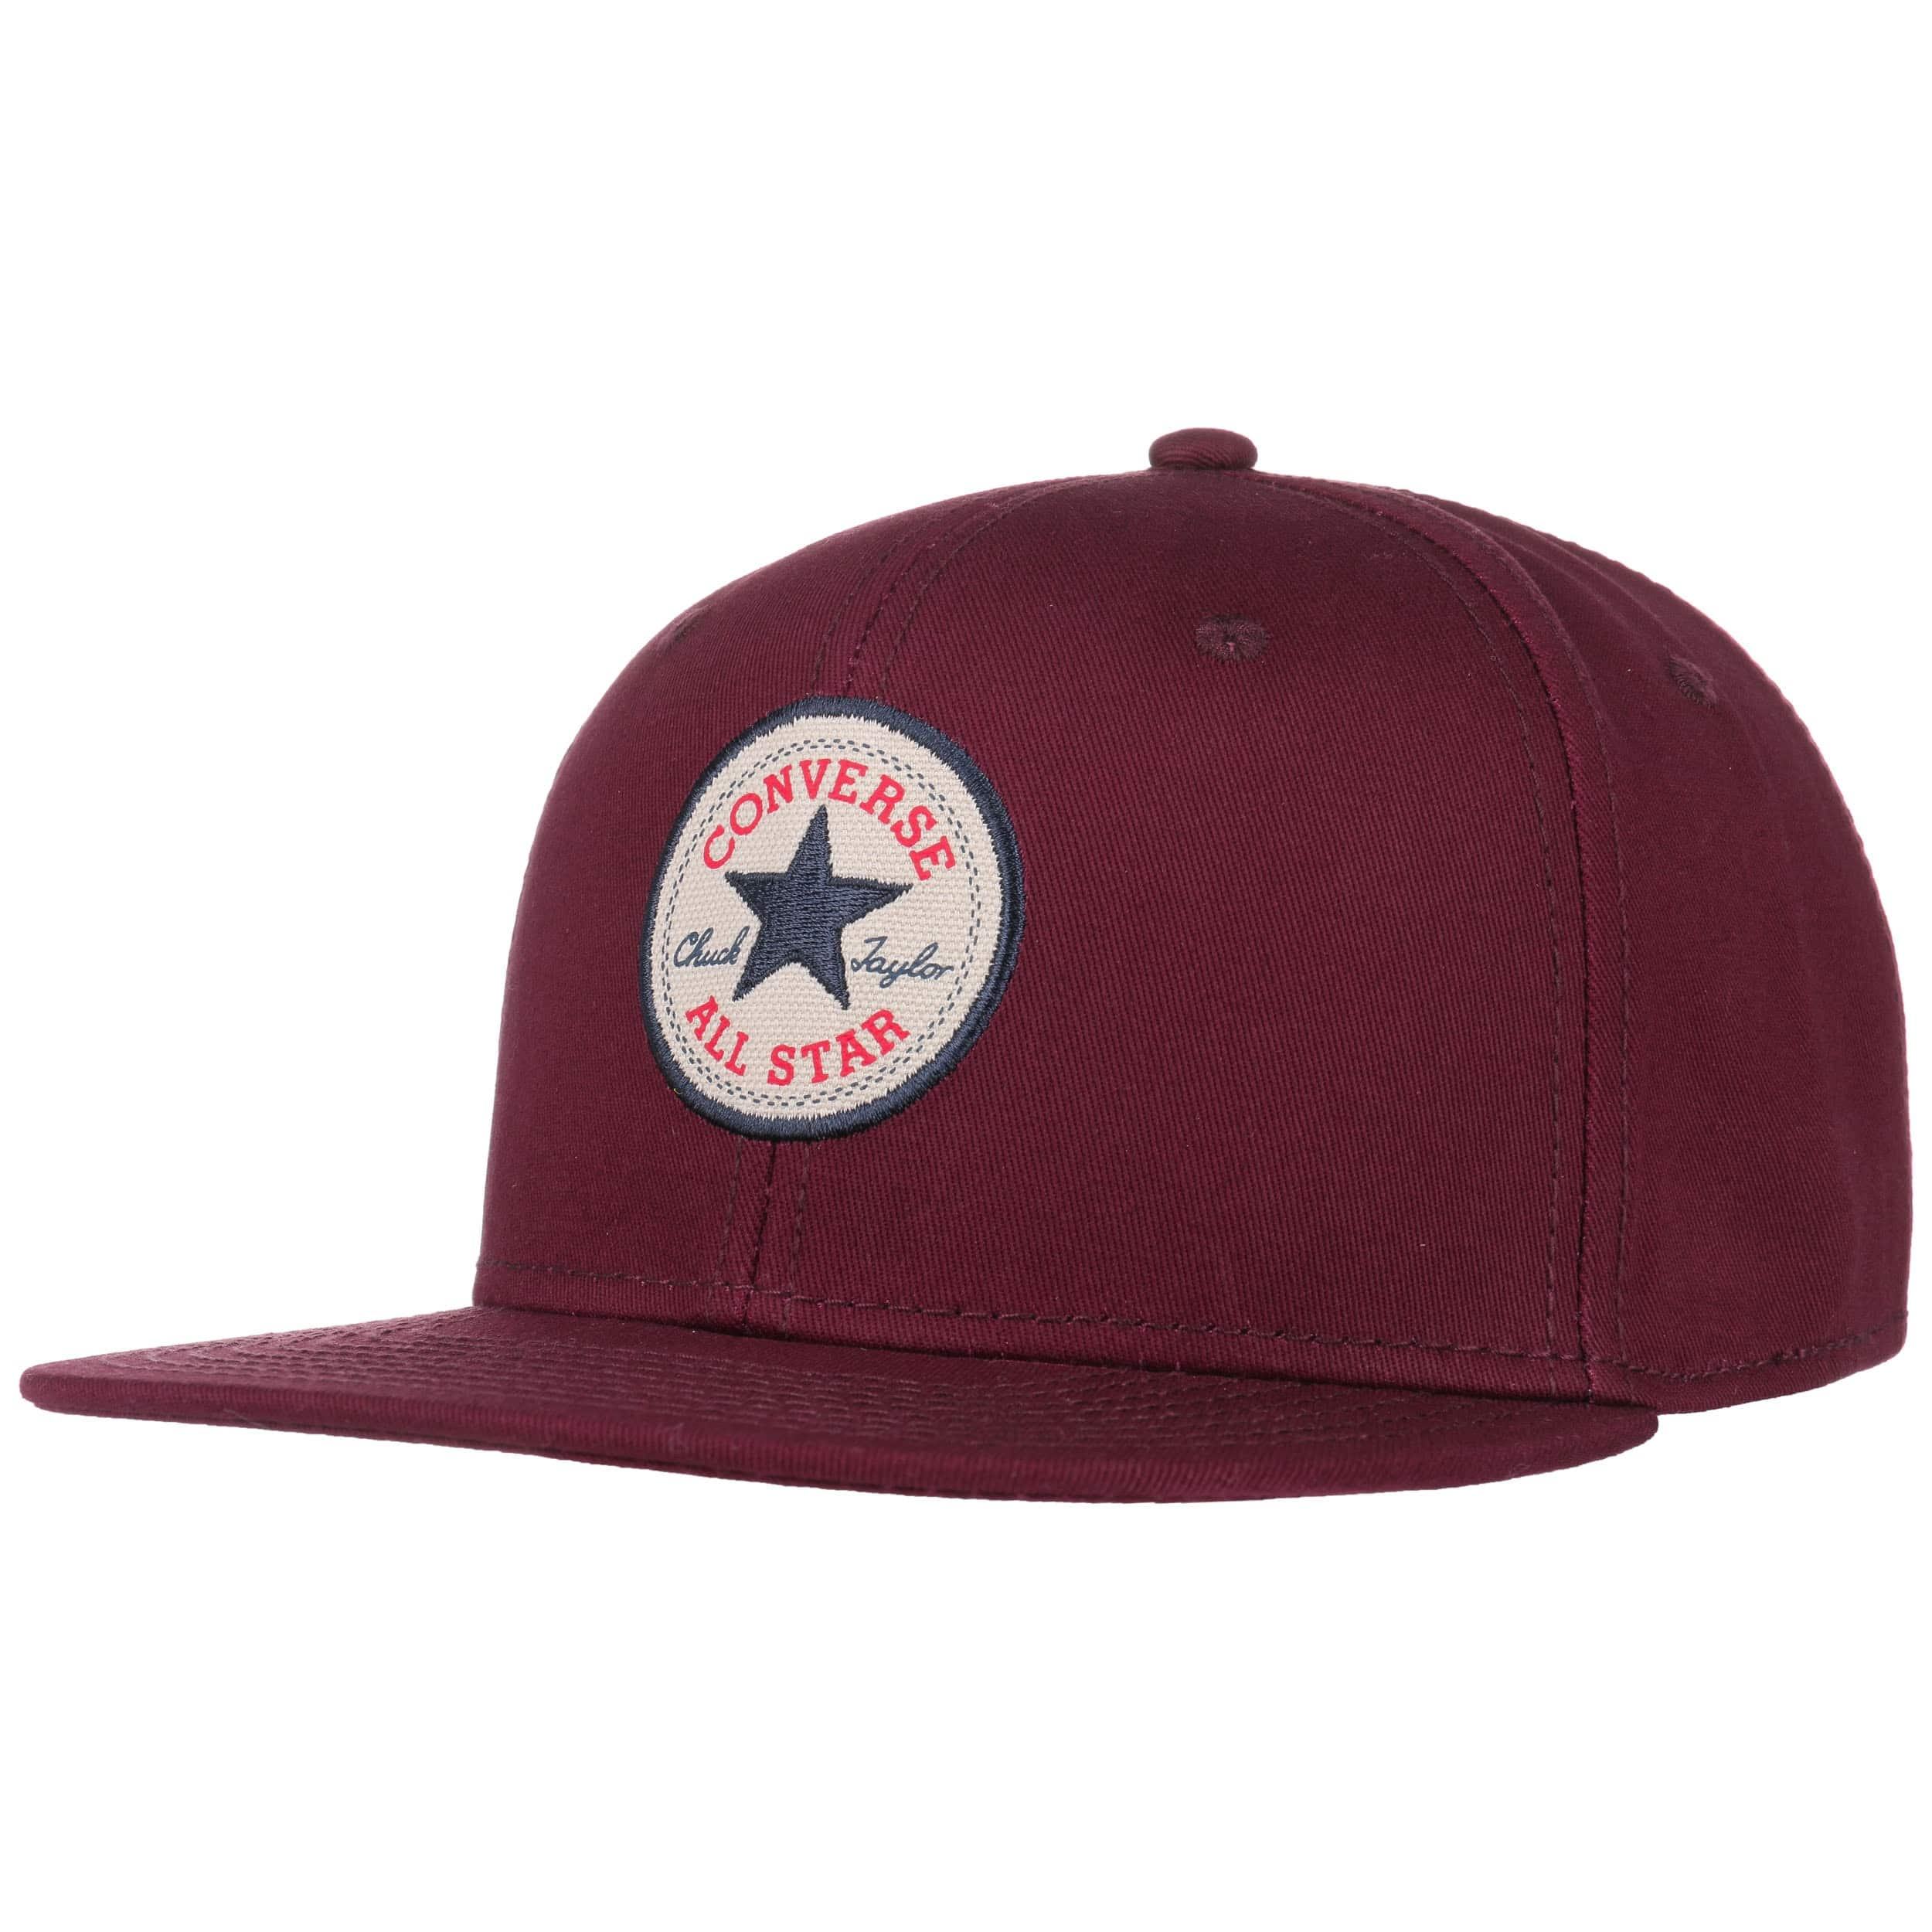 Core Twill Snapback Cap by Converse